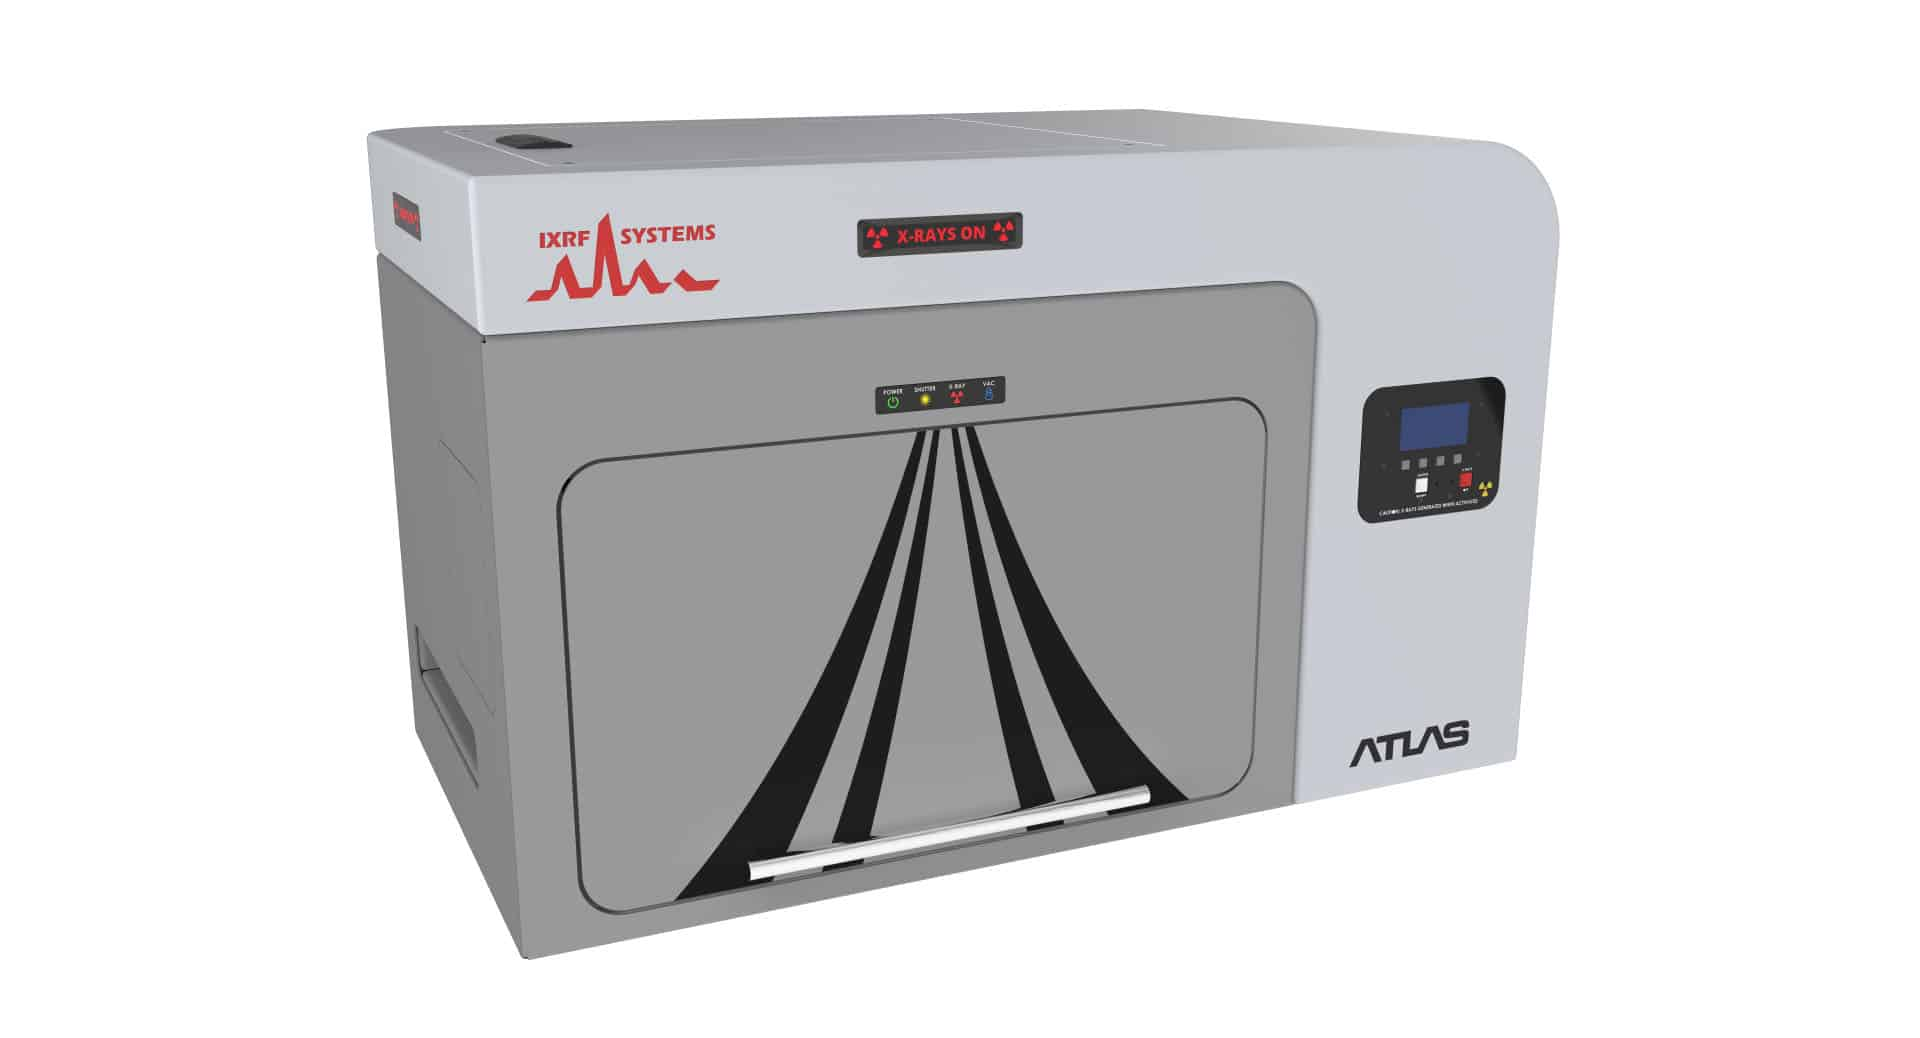 IXRF Systems Atlas M spectrometer